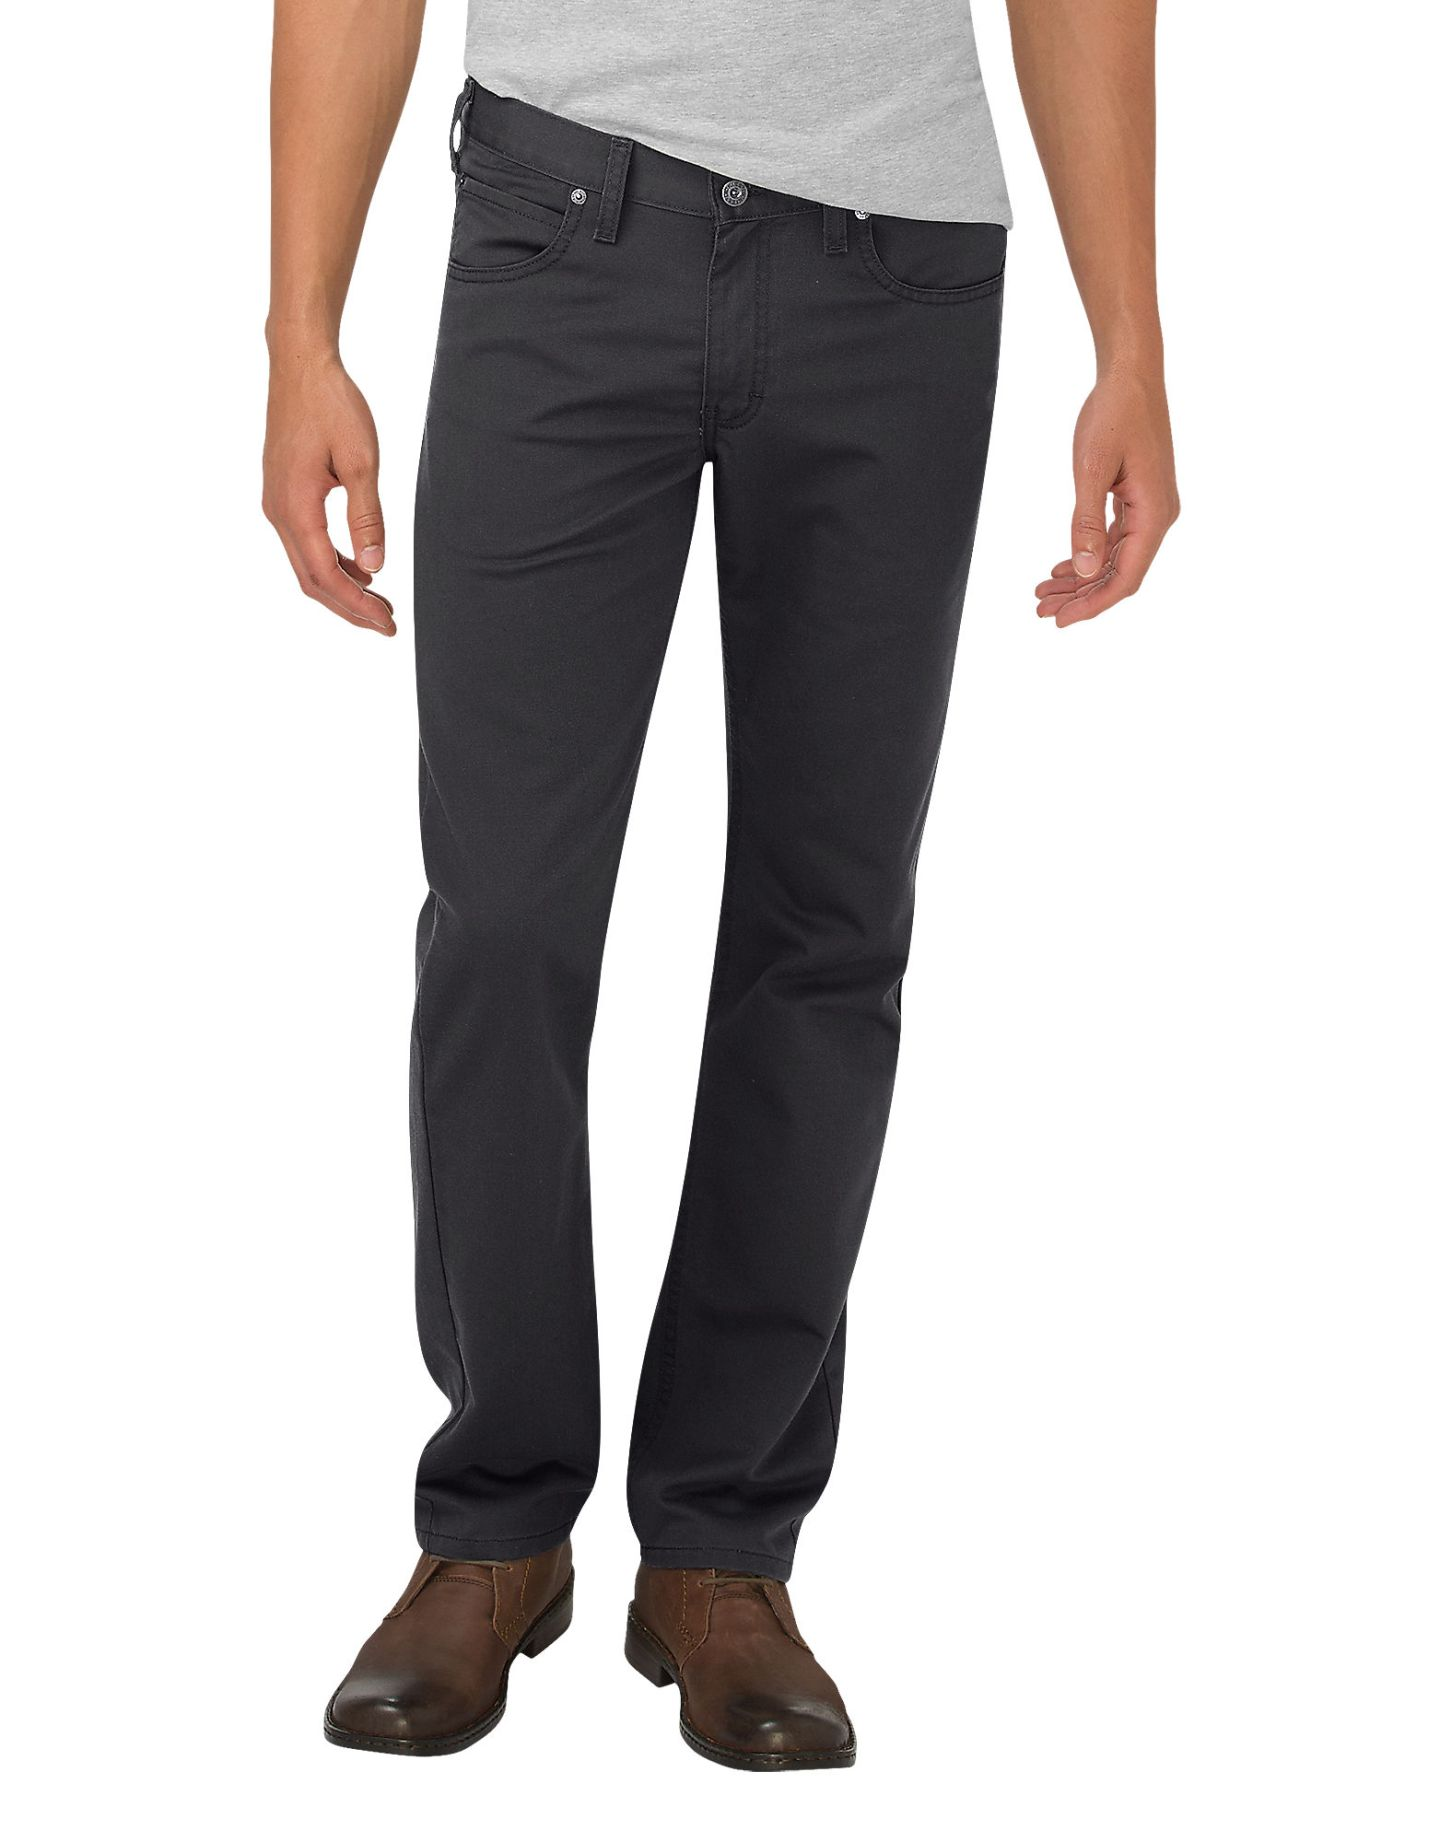 dickies-x-series-slim-fit-tapered-leg-jeans